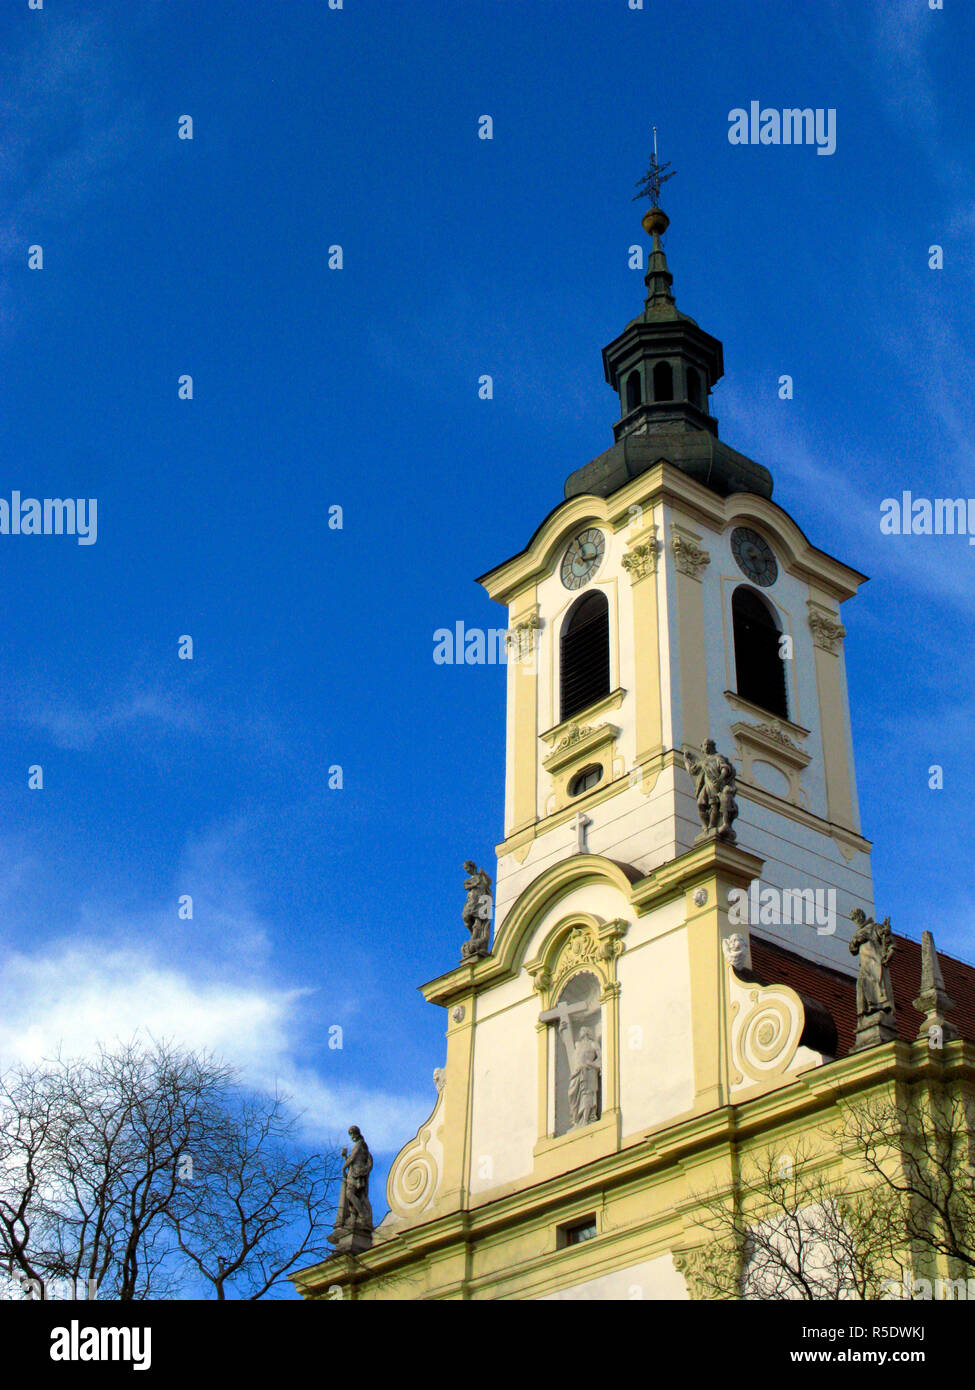 17thC Church and Monastery of The Brothers of Mercy, Bratislava, Slovakia - Stock Image